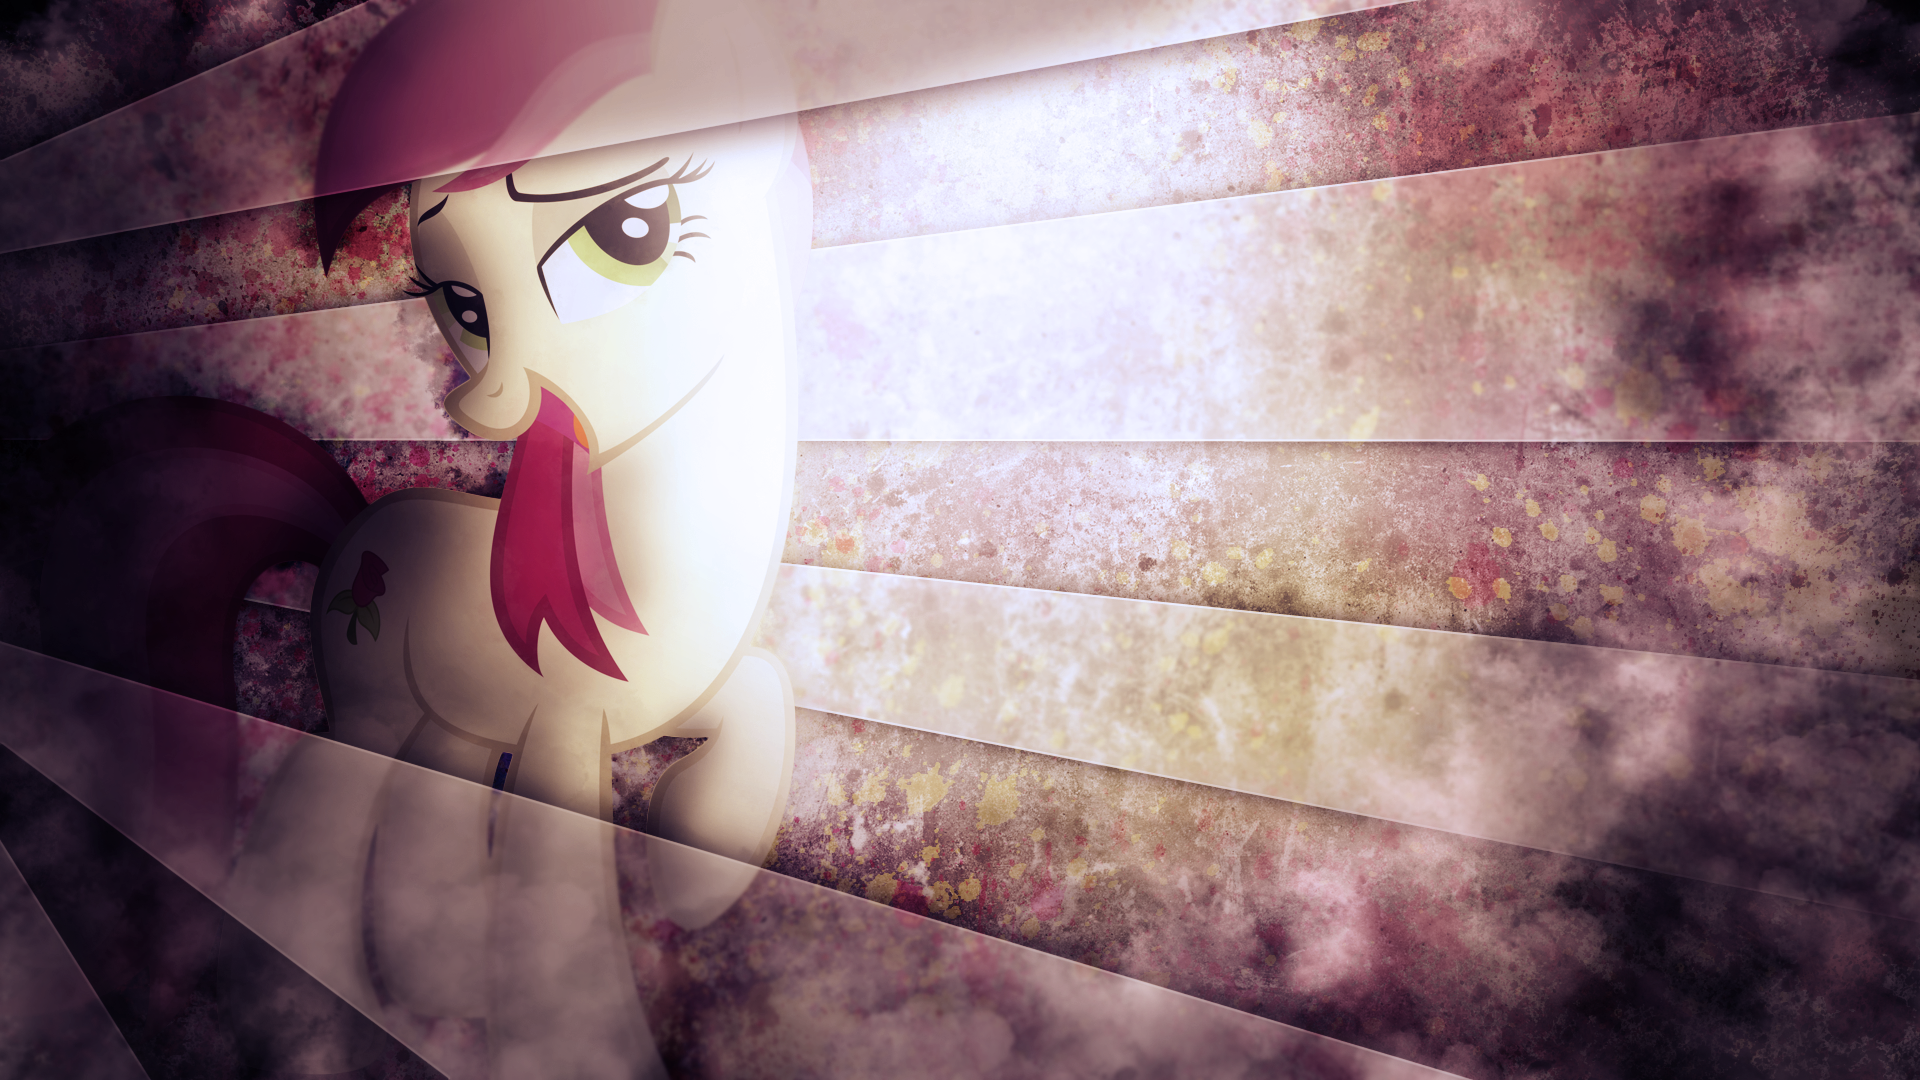 Roseluck by delectablecoffee and SandwichDelta